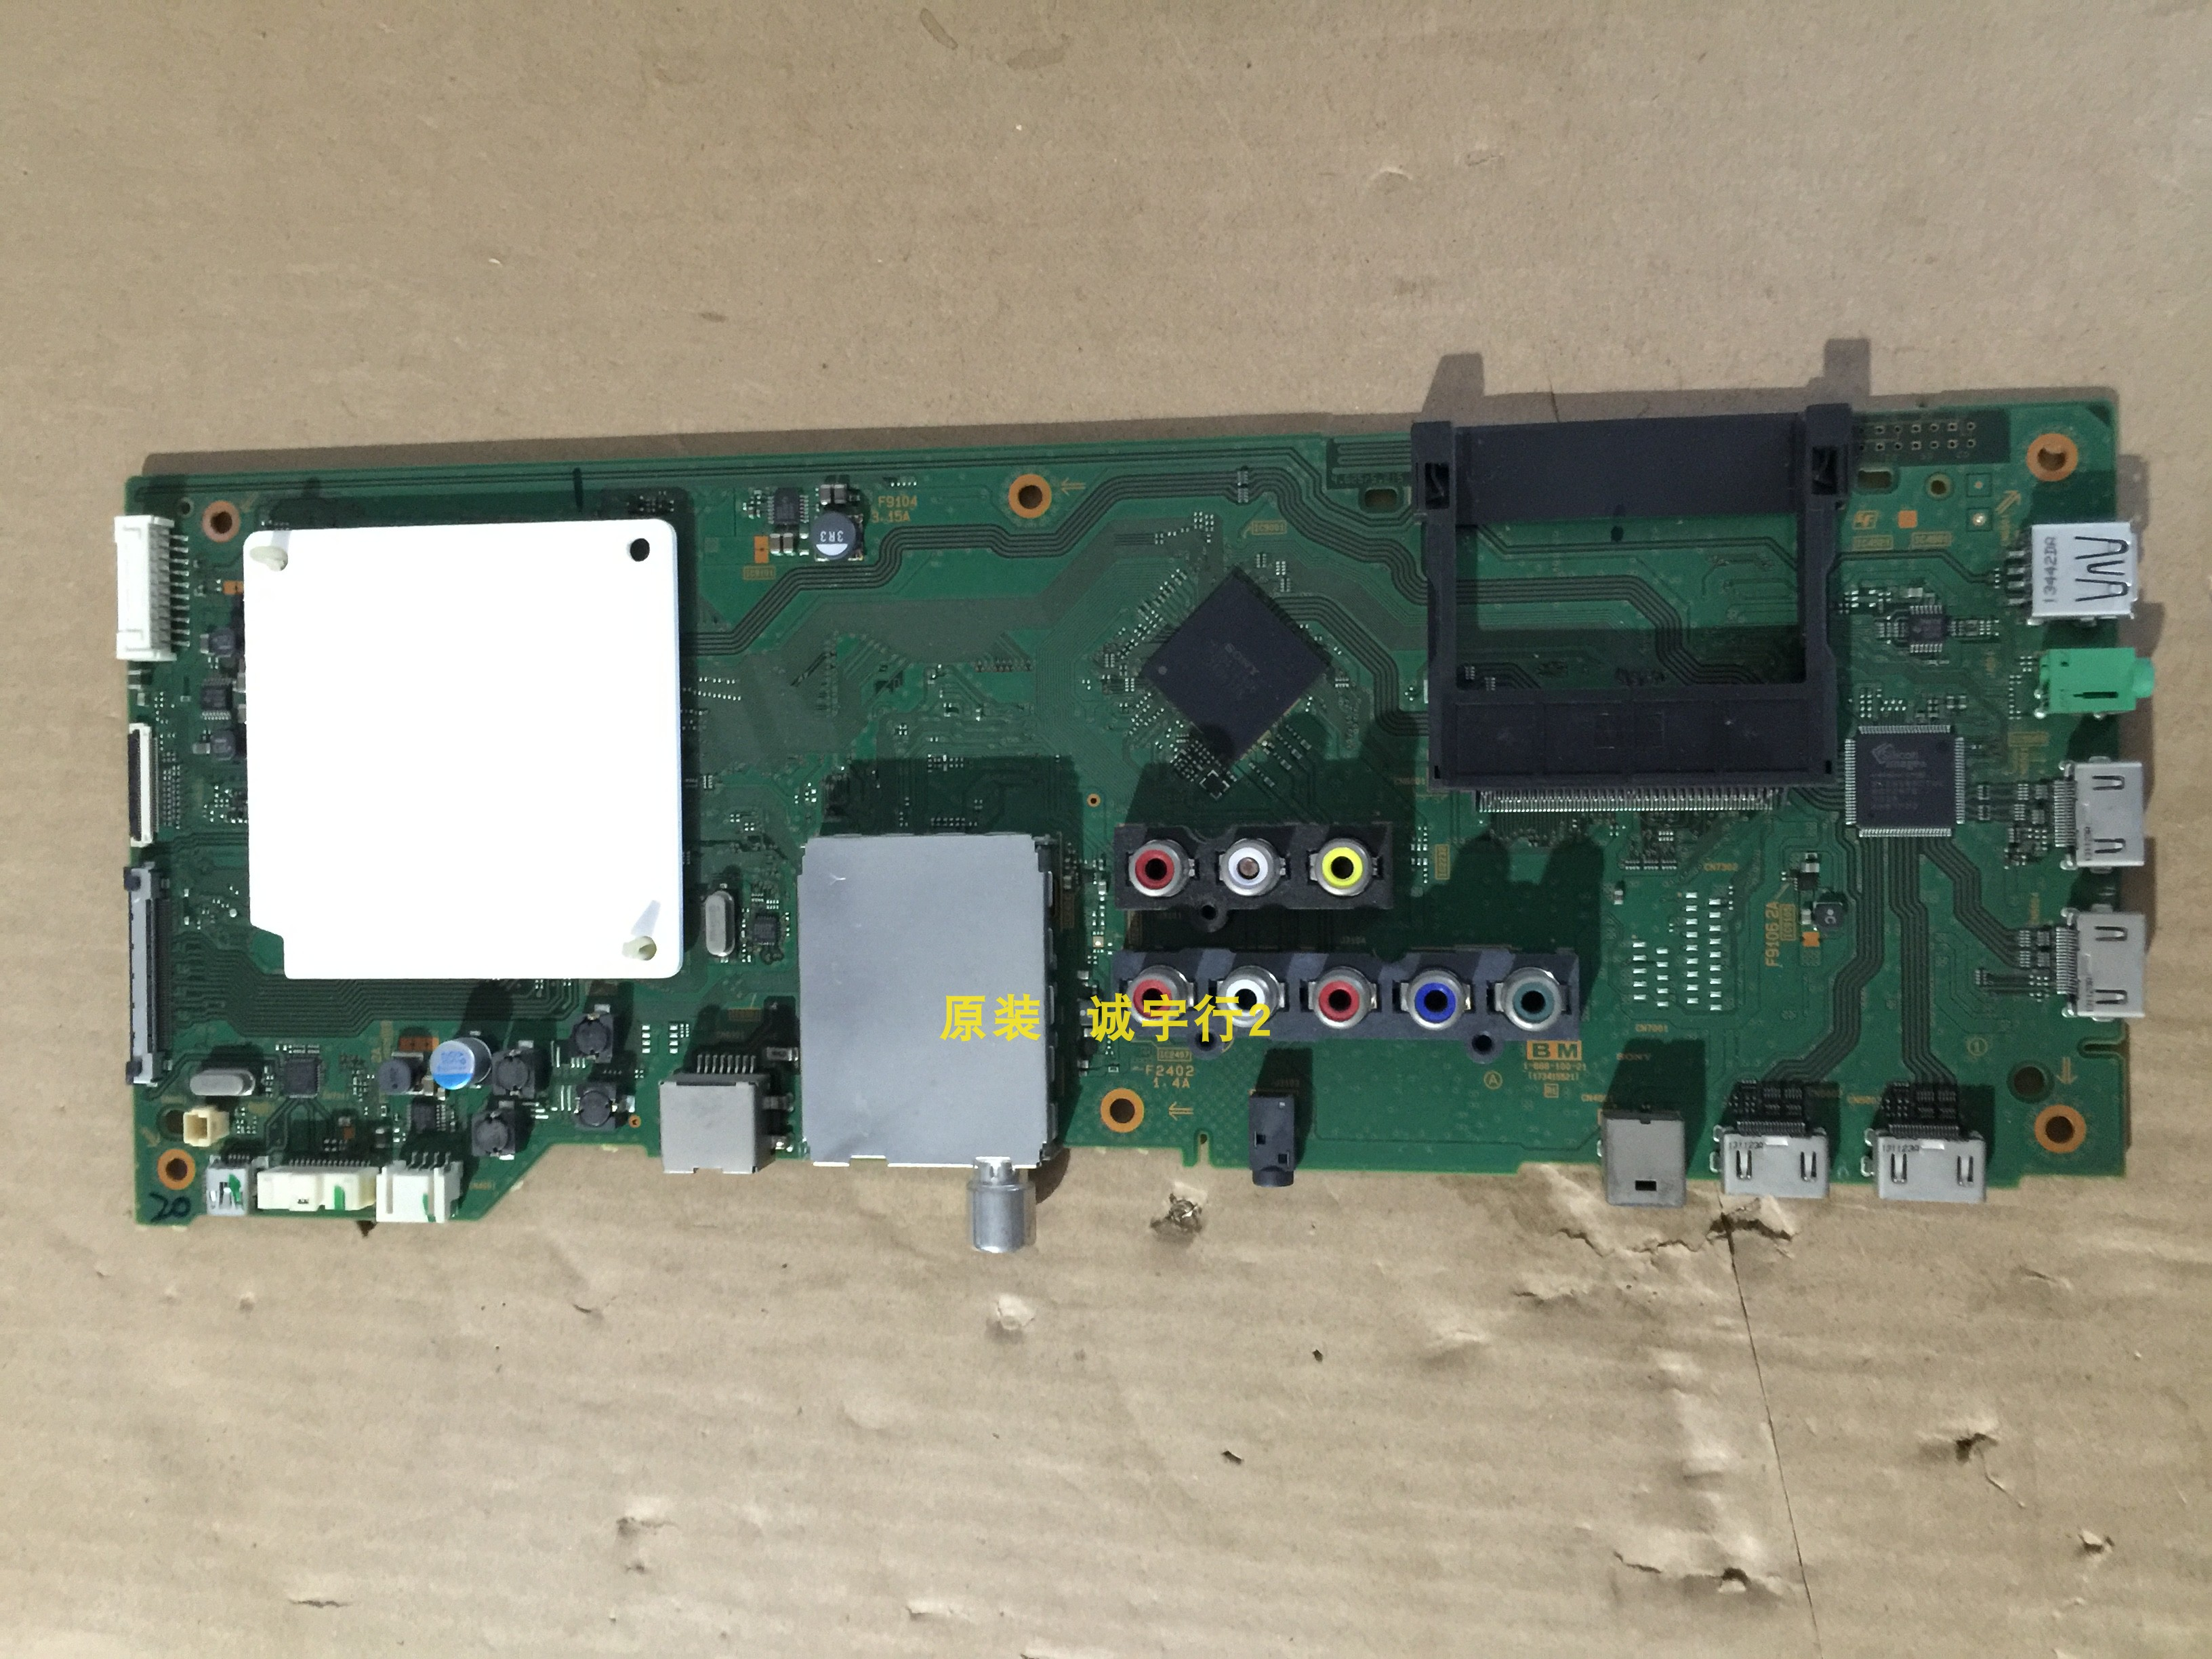 Original SONY KDL-46W950A Main Board 1-888-100-21 Screen P-MOD(DQ3S460LT01)